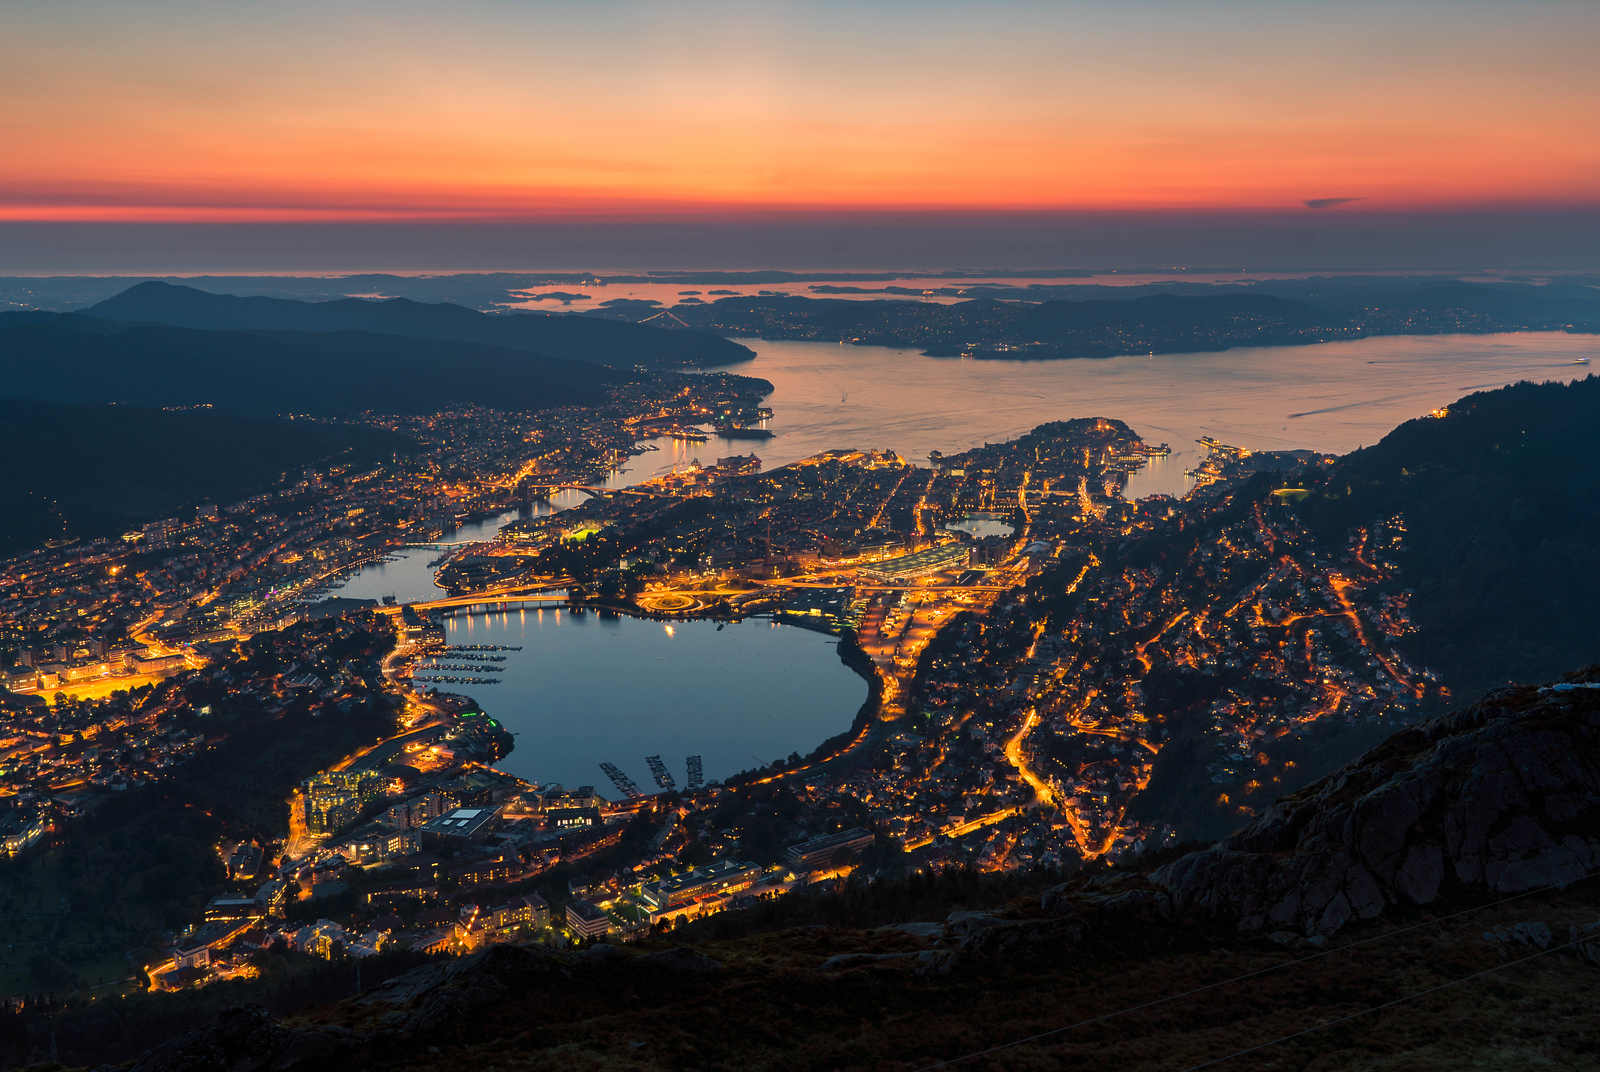 Bergen, Norway at sunset